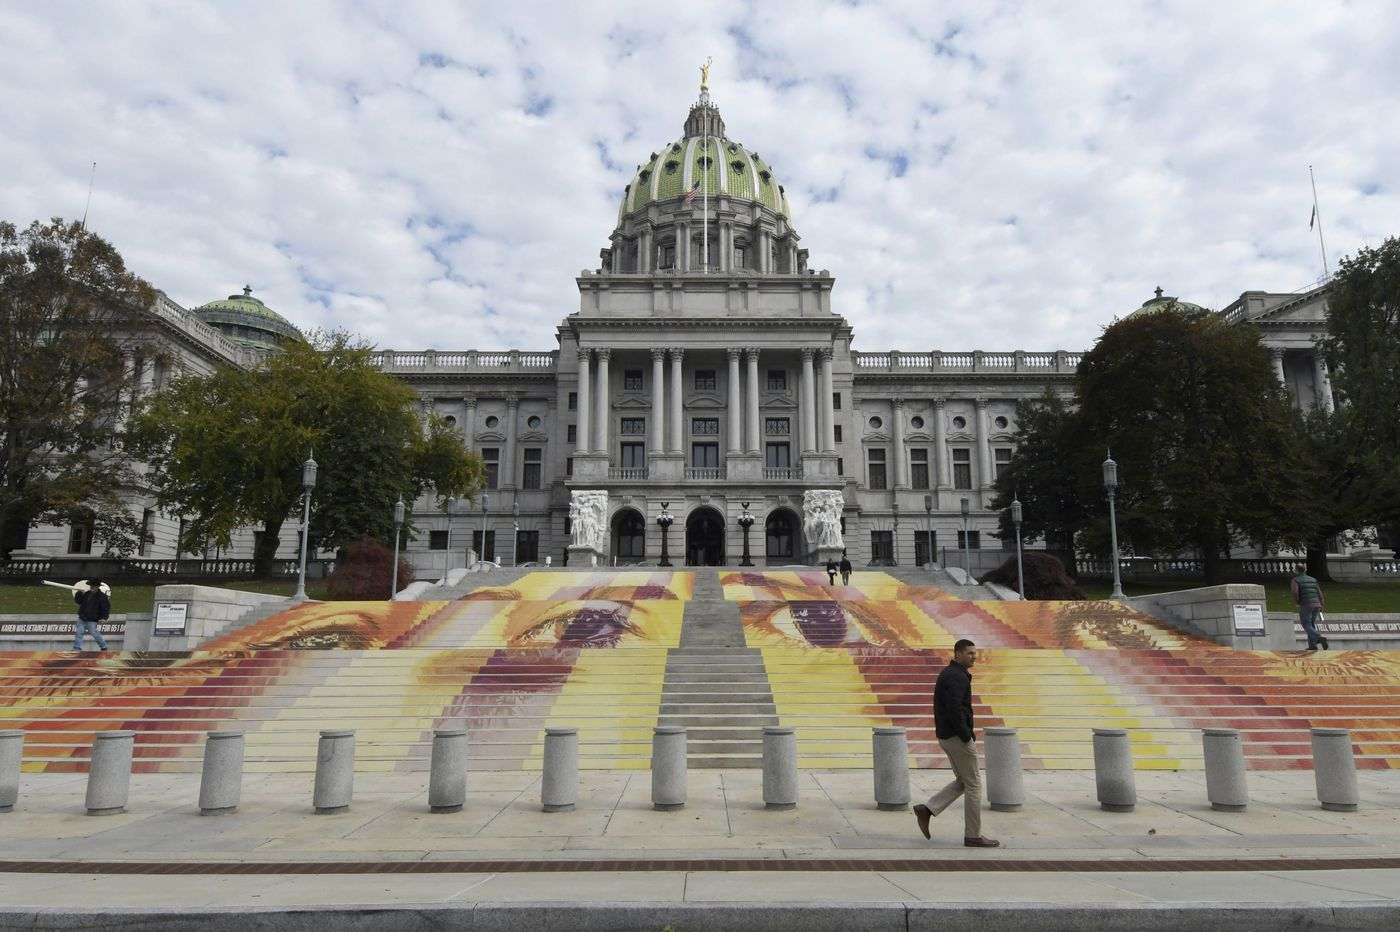 No more excuses. Fix Pa. pension funds   Editorial